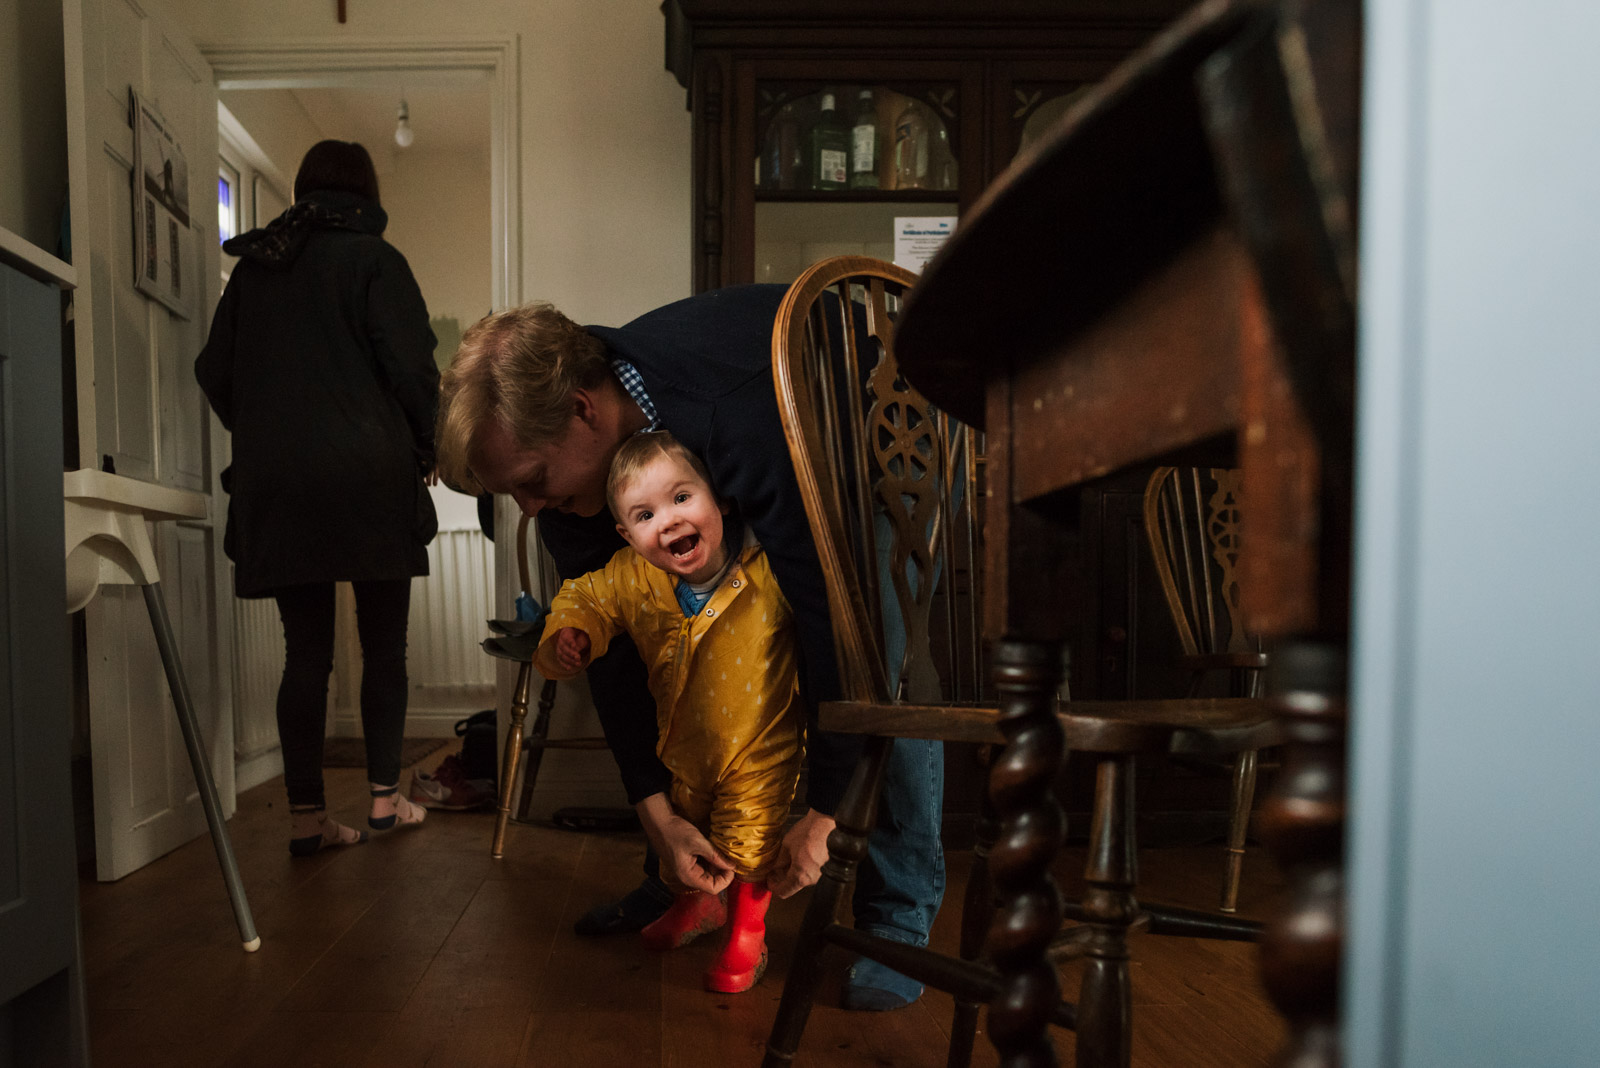 Documentary family photography, Dad putting wellies on boy, taken by The Ginger Collective photography Berkshire